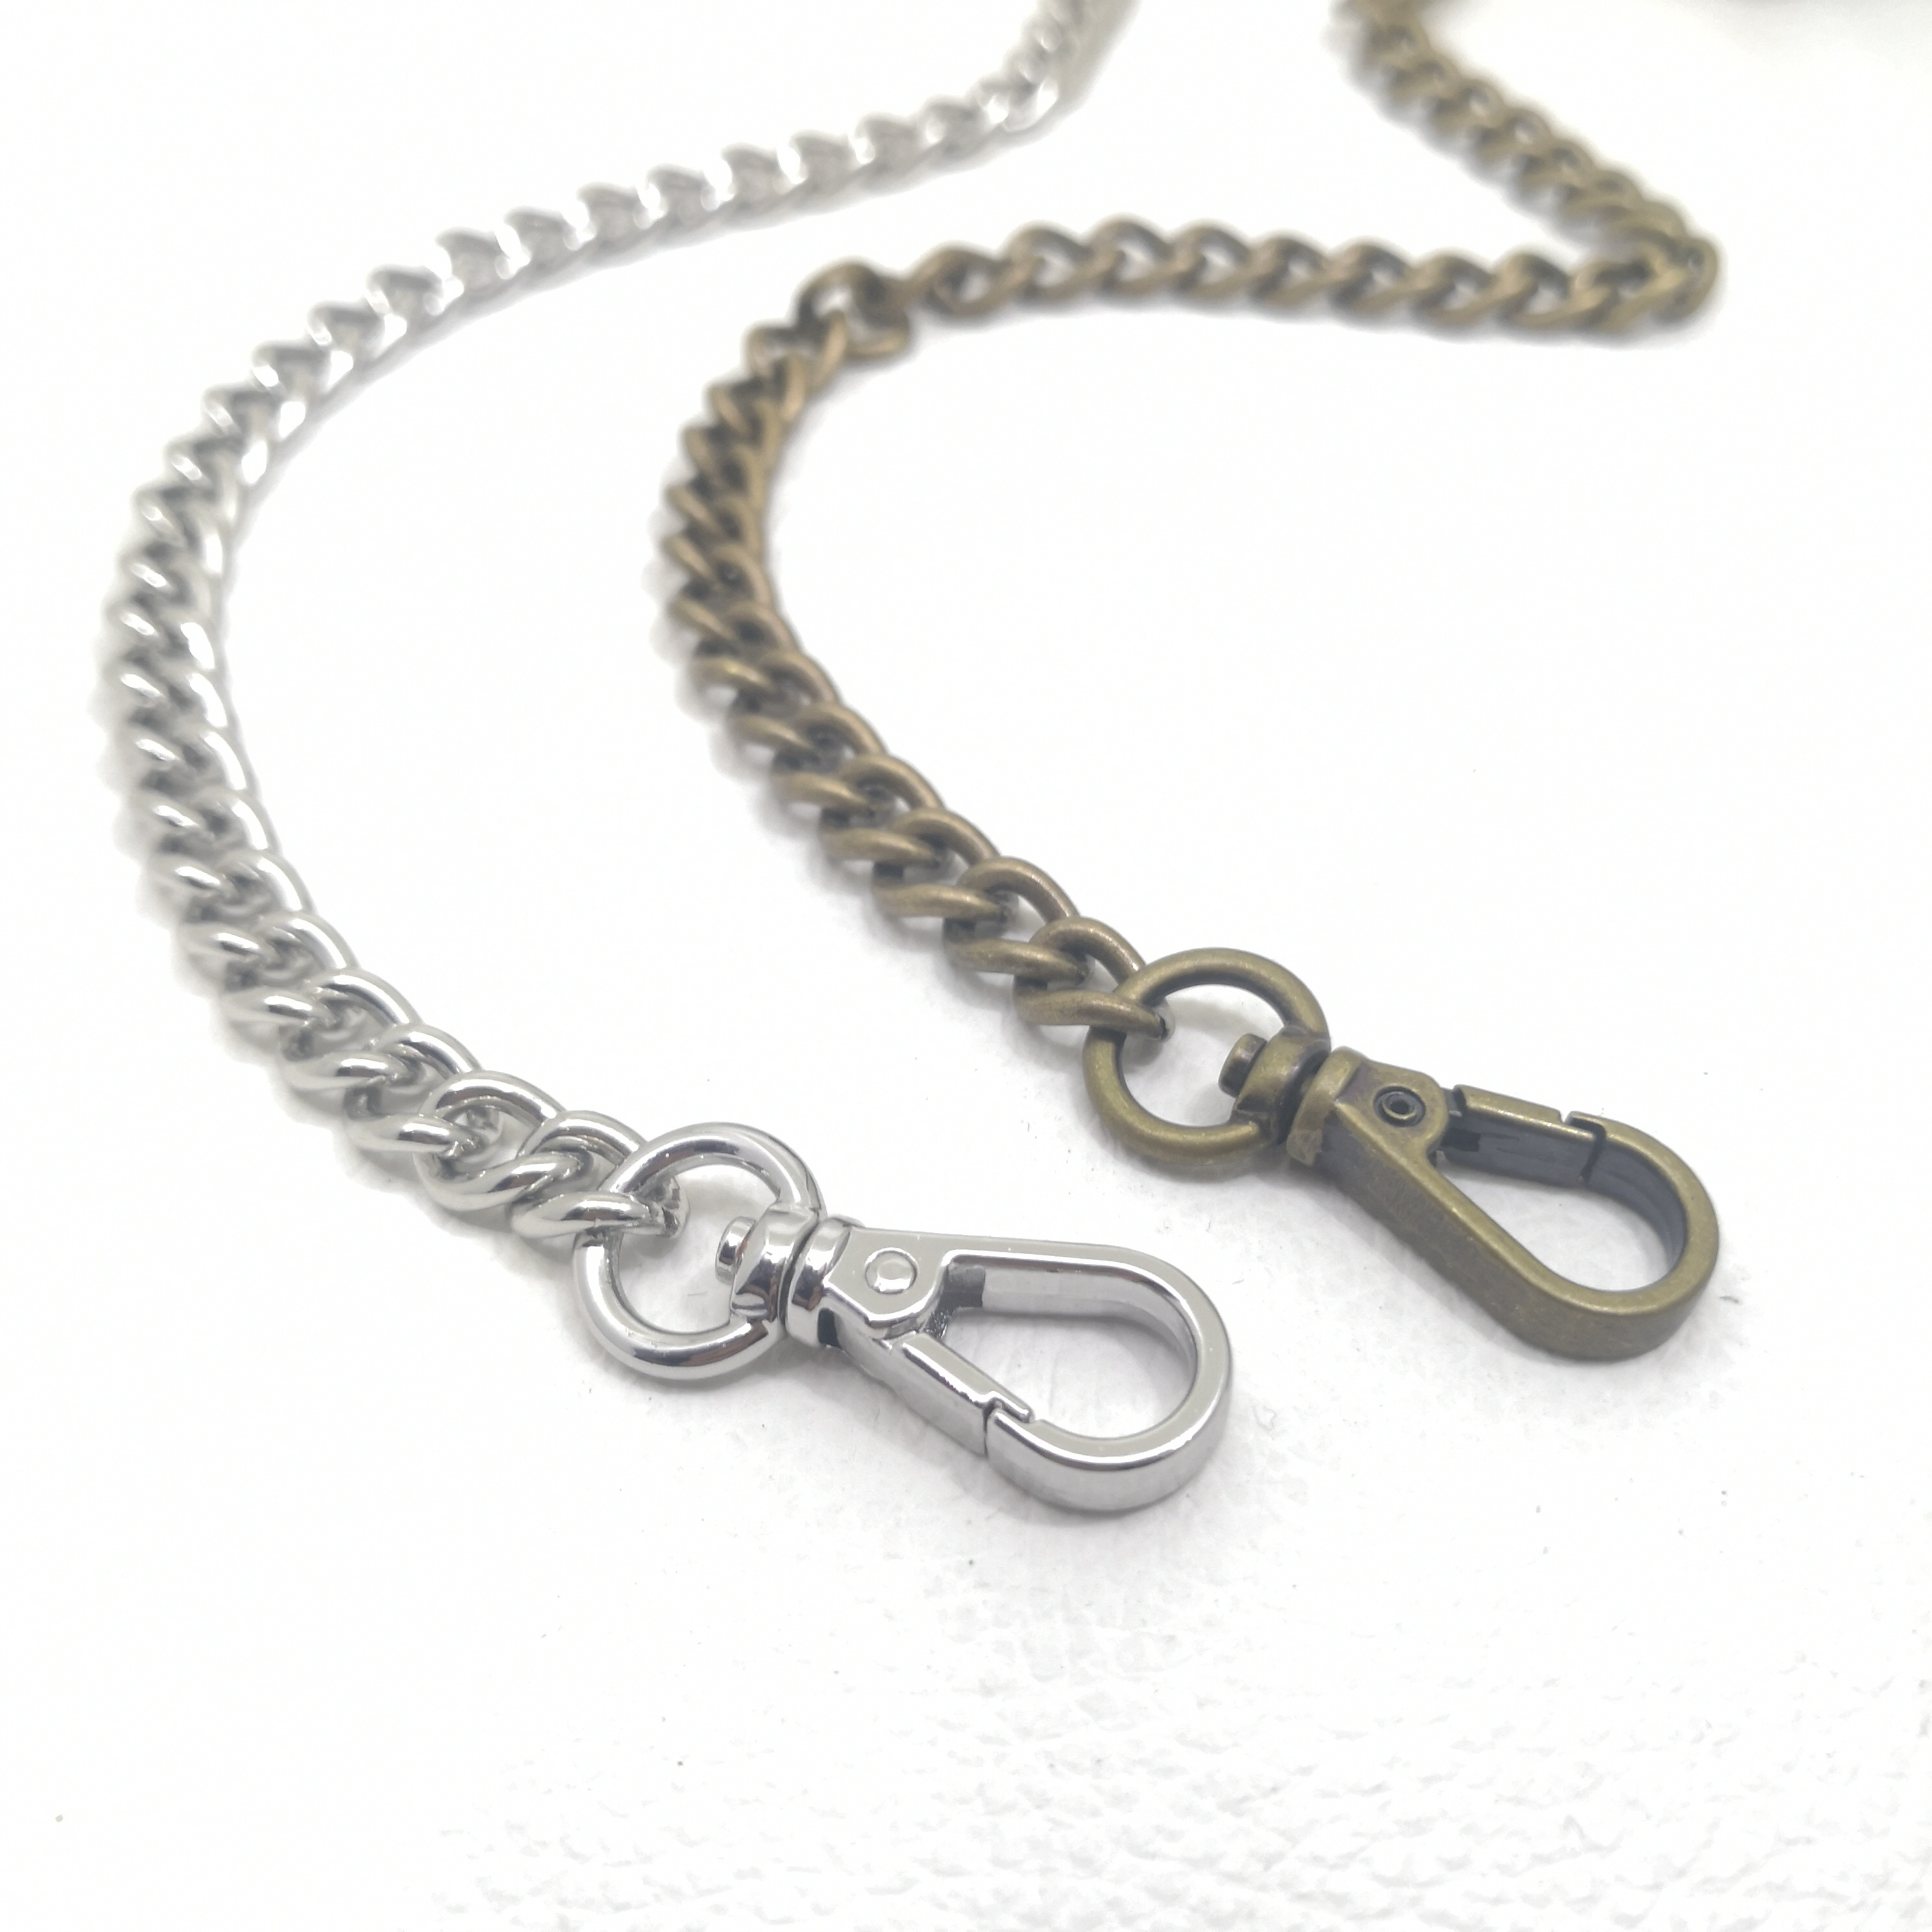 Cross-Body Metal Chain for CrossBody Handbag (For Changing Shoulder Chain / D.I.Y. Use)